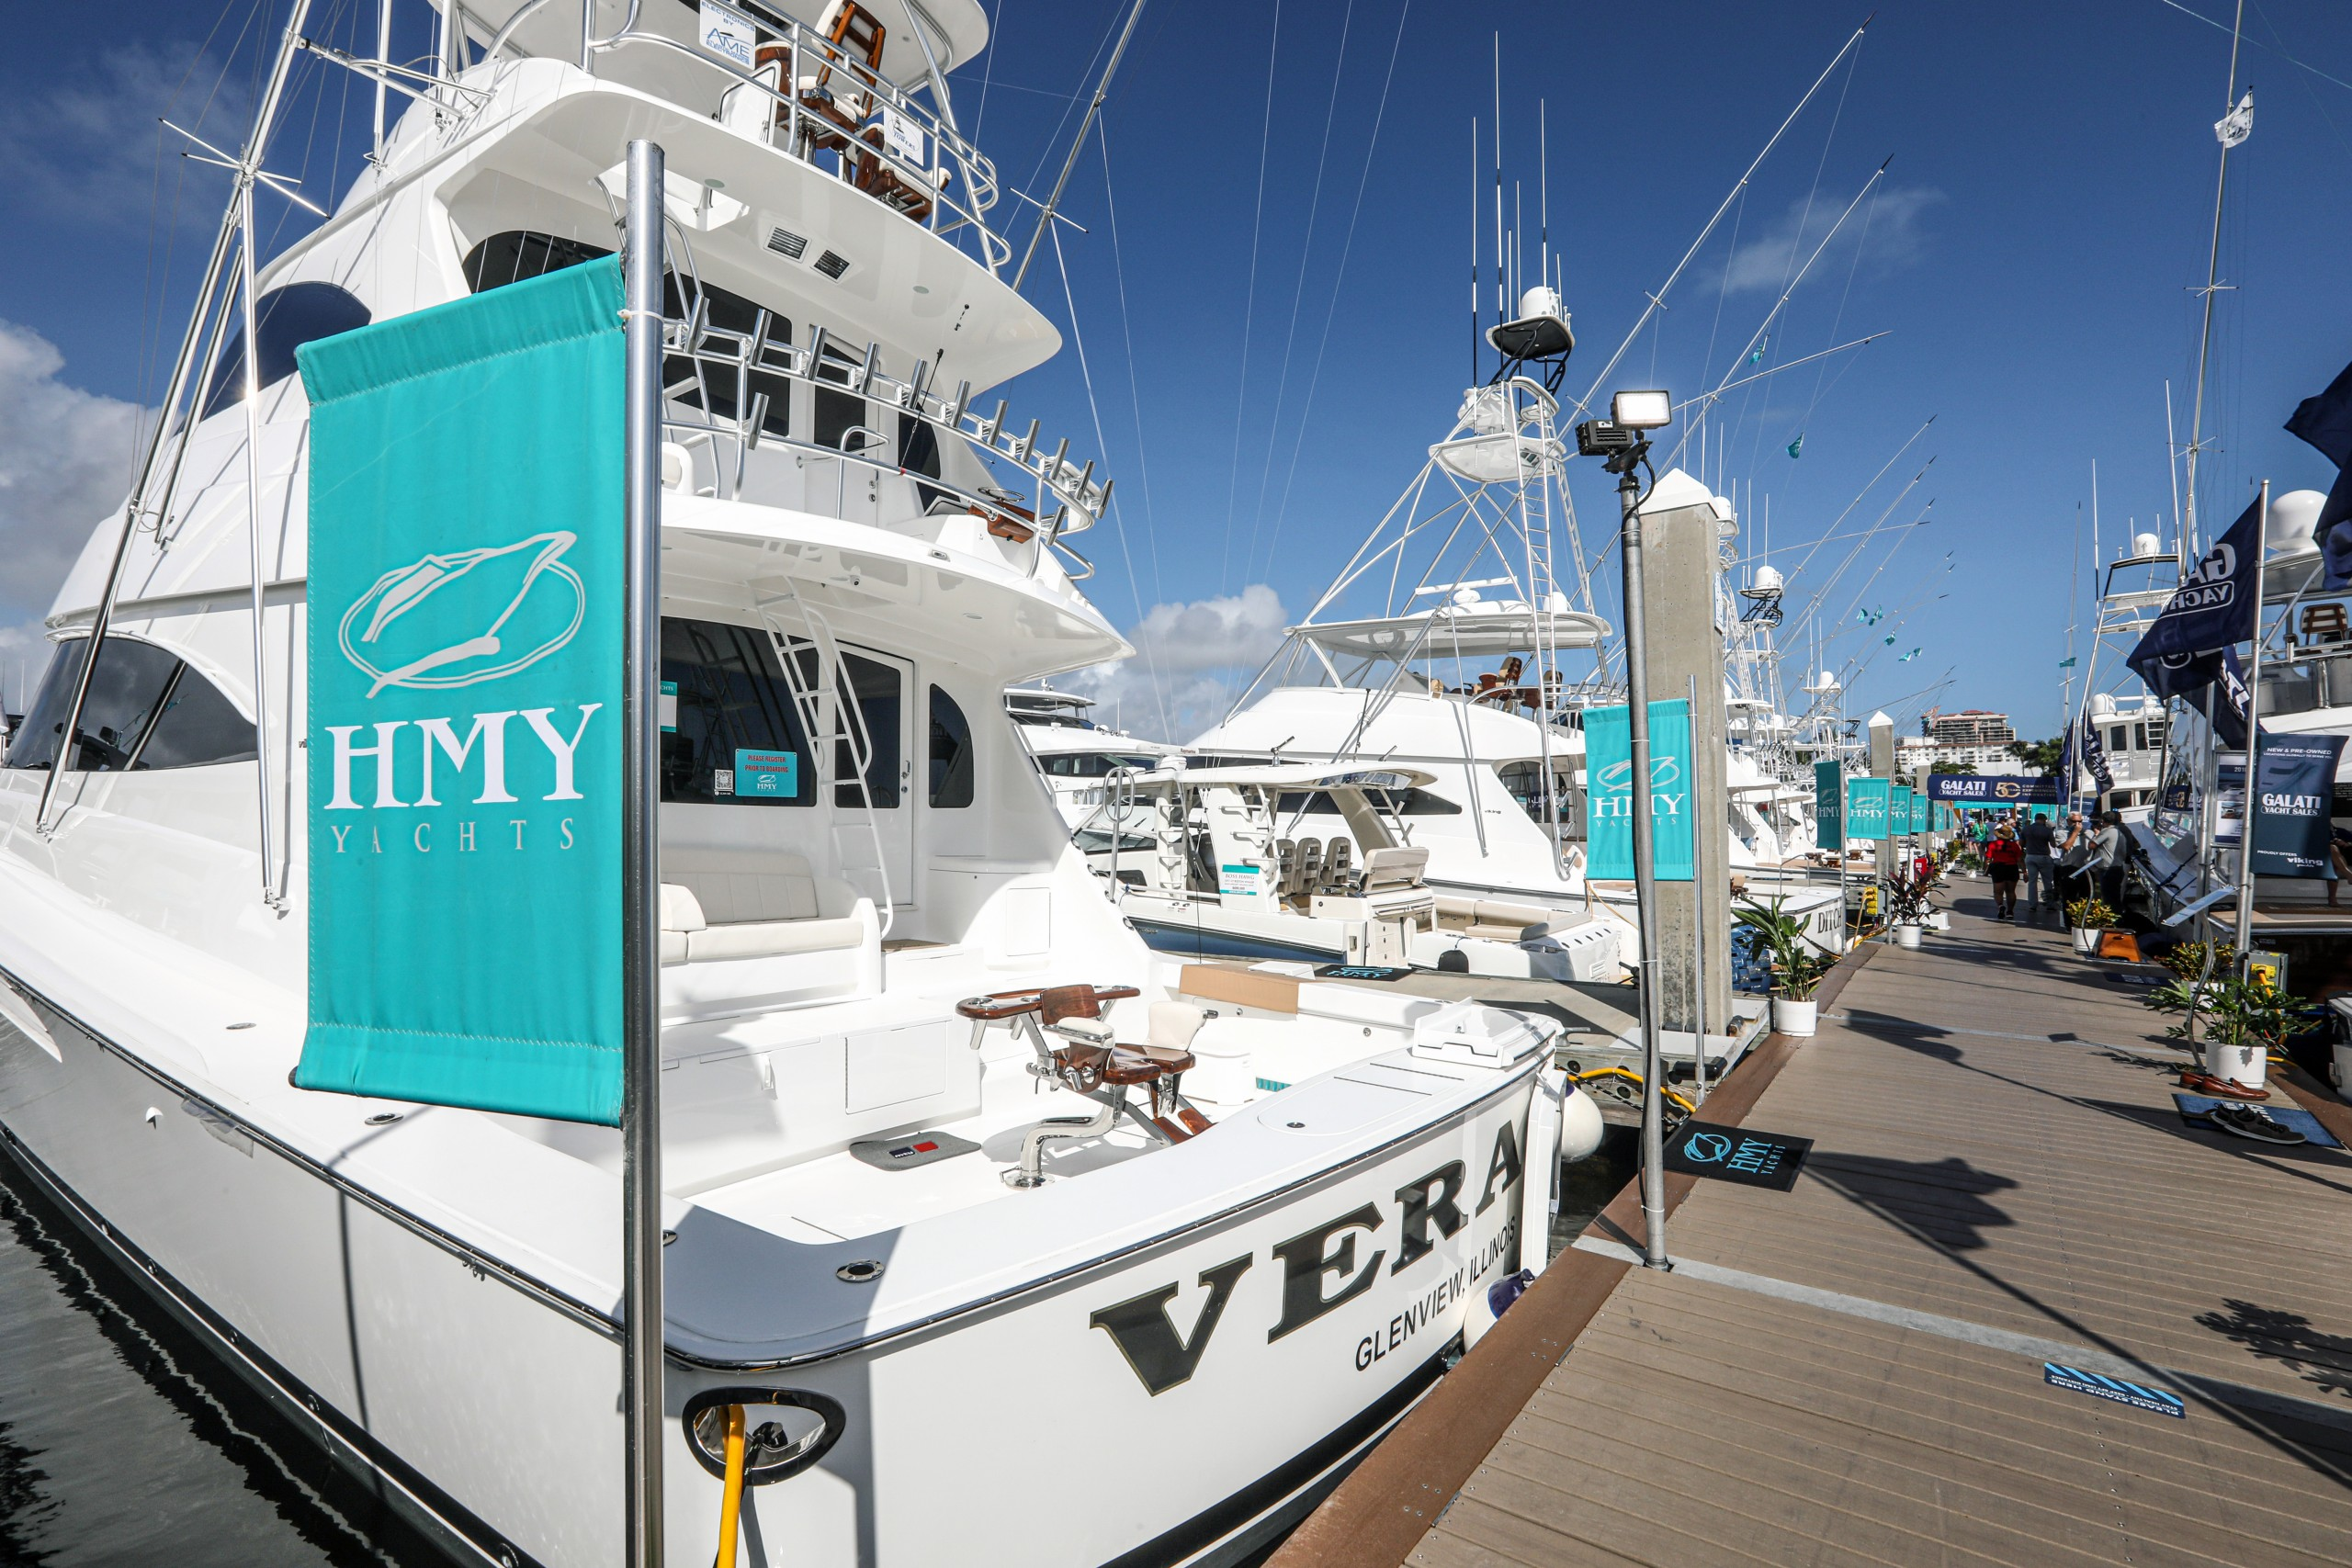 hmy yachts on display at the fort lauderdale boat show